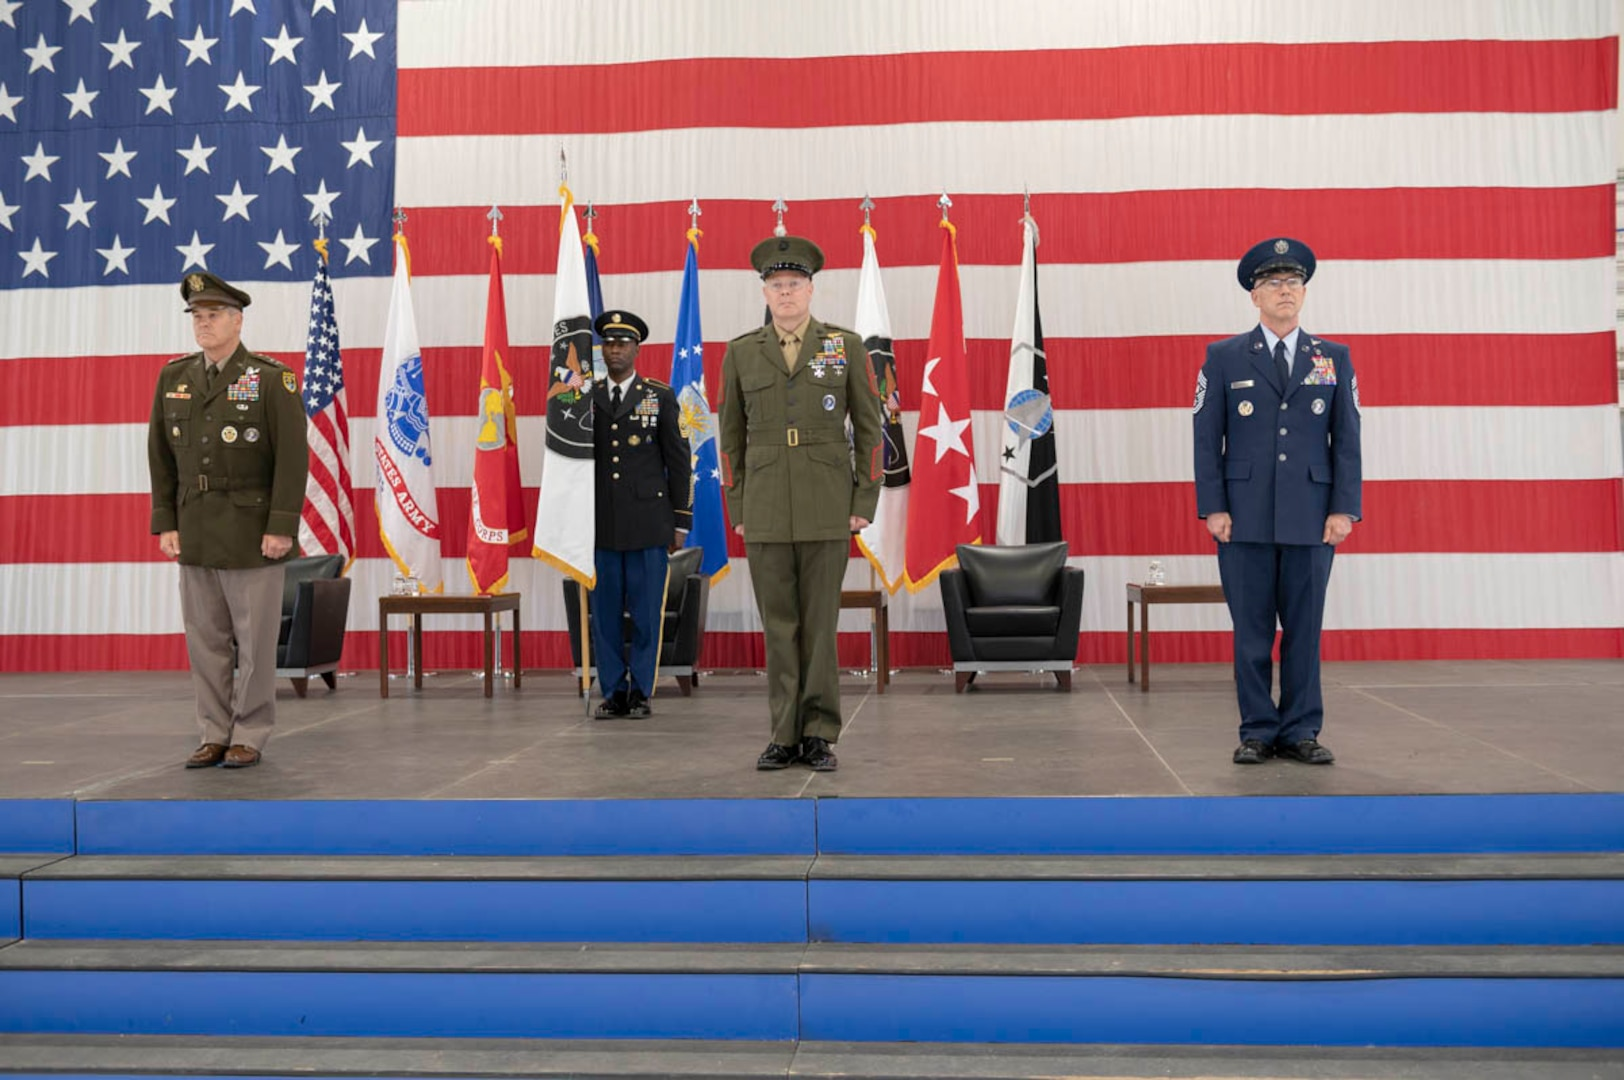 U.S. Army Gen. James Dickinson, U.S. Space Command commander; U.S. Marine Corps Master Gunnery Sgt. Scott Stalker; and U.S. Space Force Chief Master Sgt. Roger Towberman stand at attention during USSPACECOM's change of responsibility ceremony Aug. 28, 2020, at Peterson Air Force Base, Colorado. Stalker assumed responsibility as USSPACECOM's command senior enlisted leader from Towberman during the ceremony. This was USSPACECOM's first change of responsibility since the command was established Aug. 29, 2019.